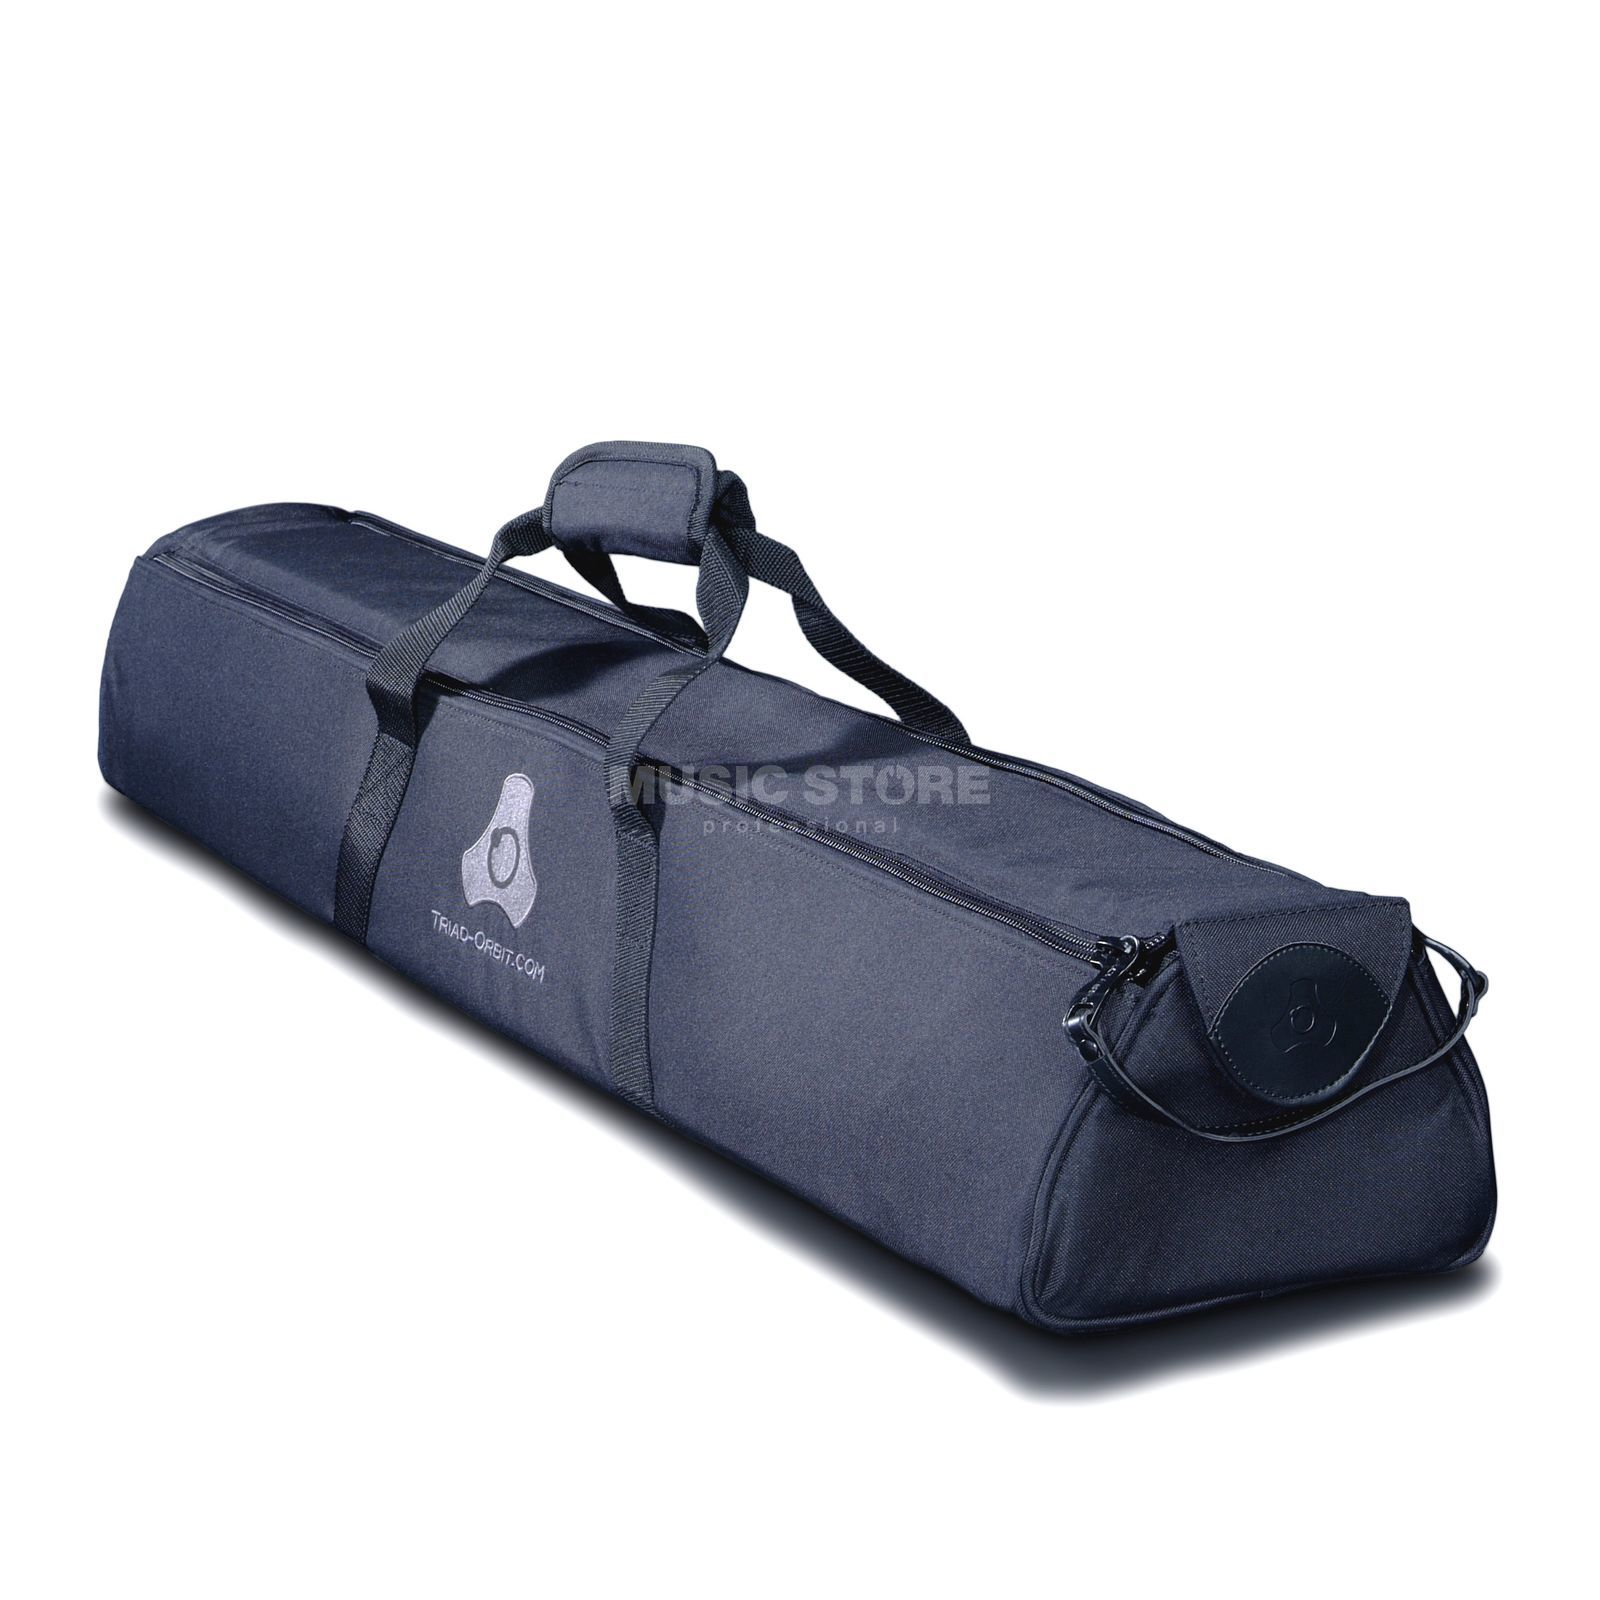 Triad-Orbit TGB-2 T-O GO Transport Tasche STD Produktbild